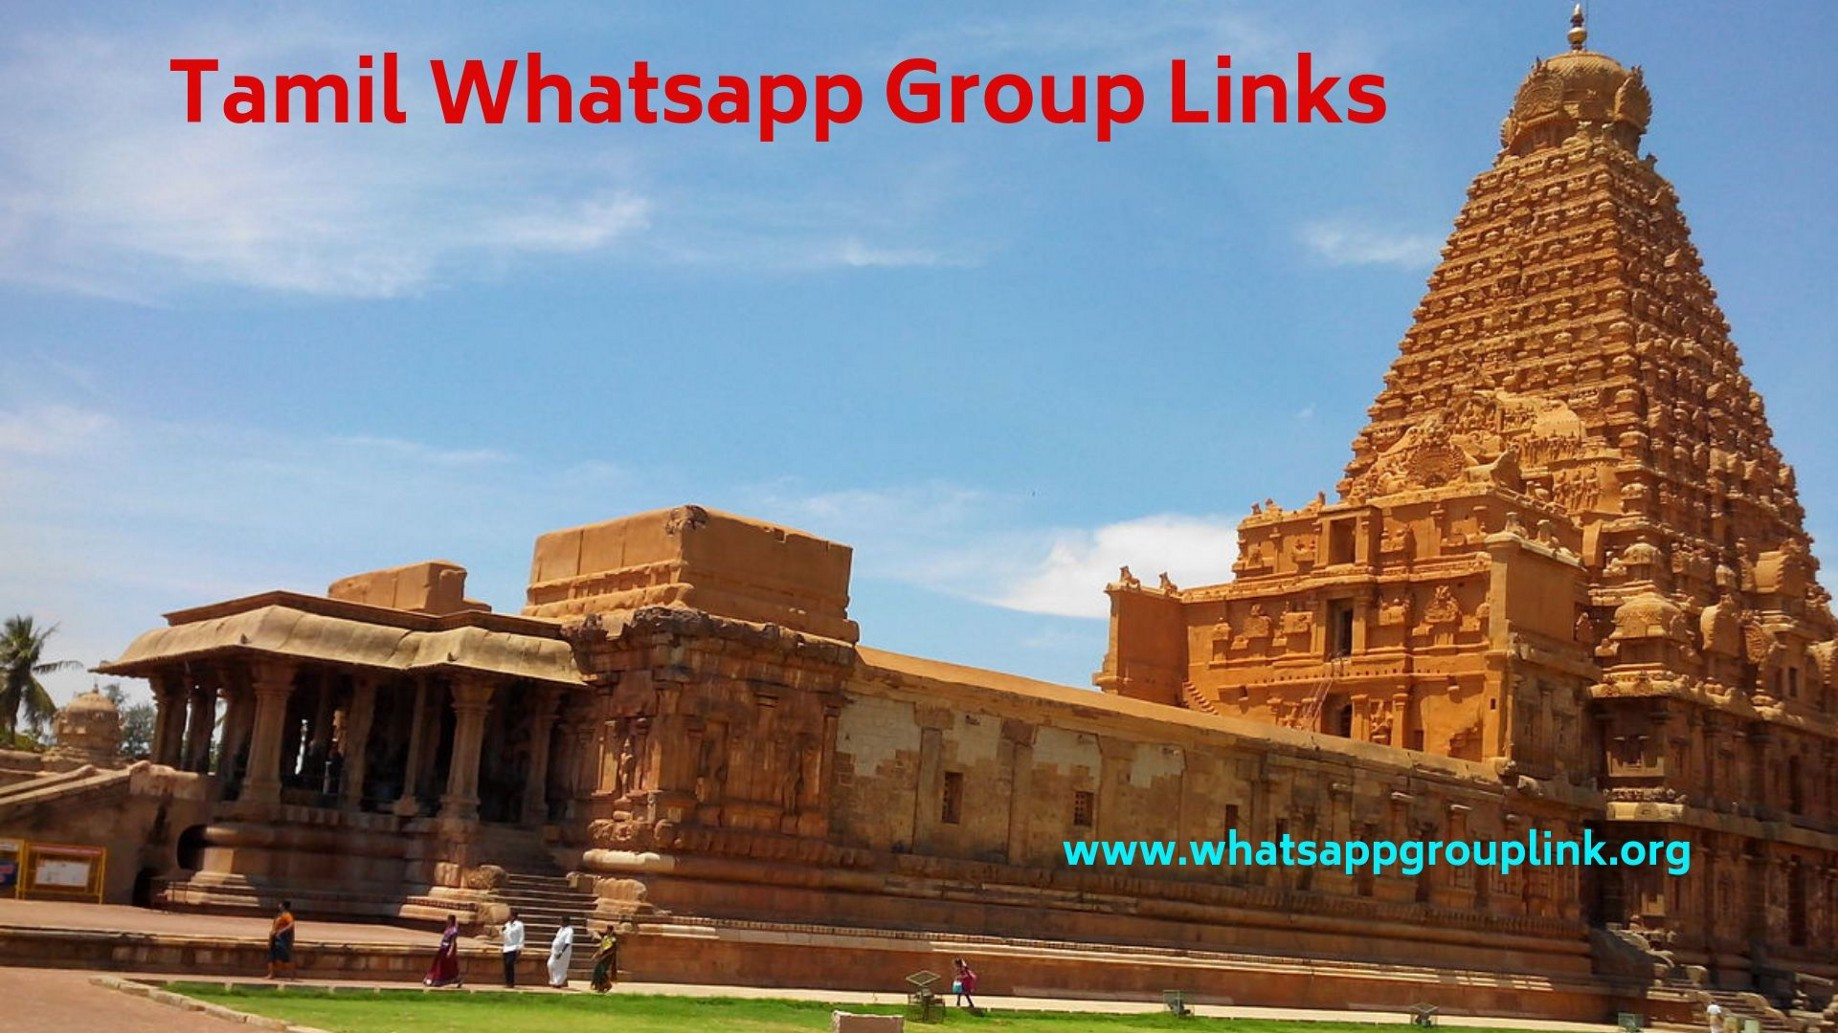 How To Get Whatsapp Group Link Tamil Join Tamil WhatsApp